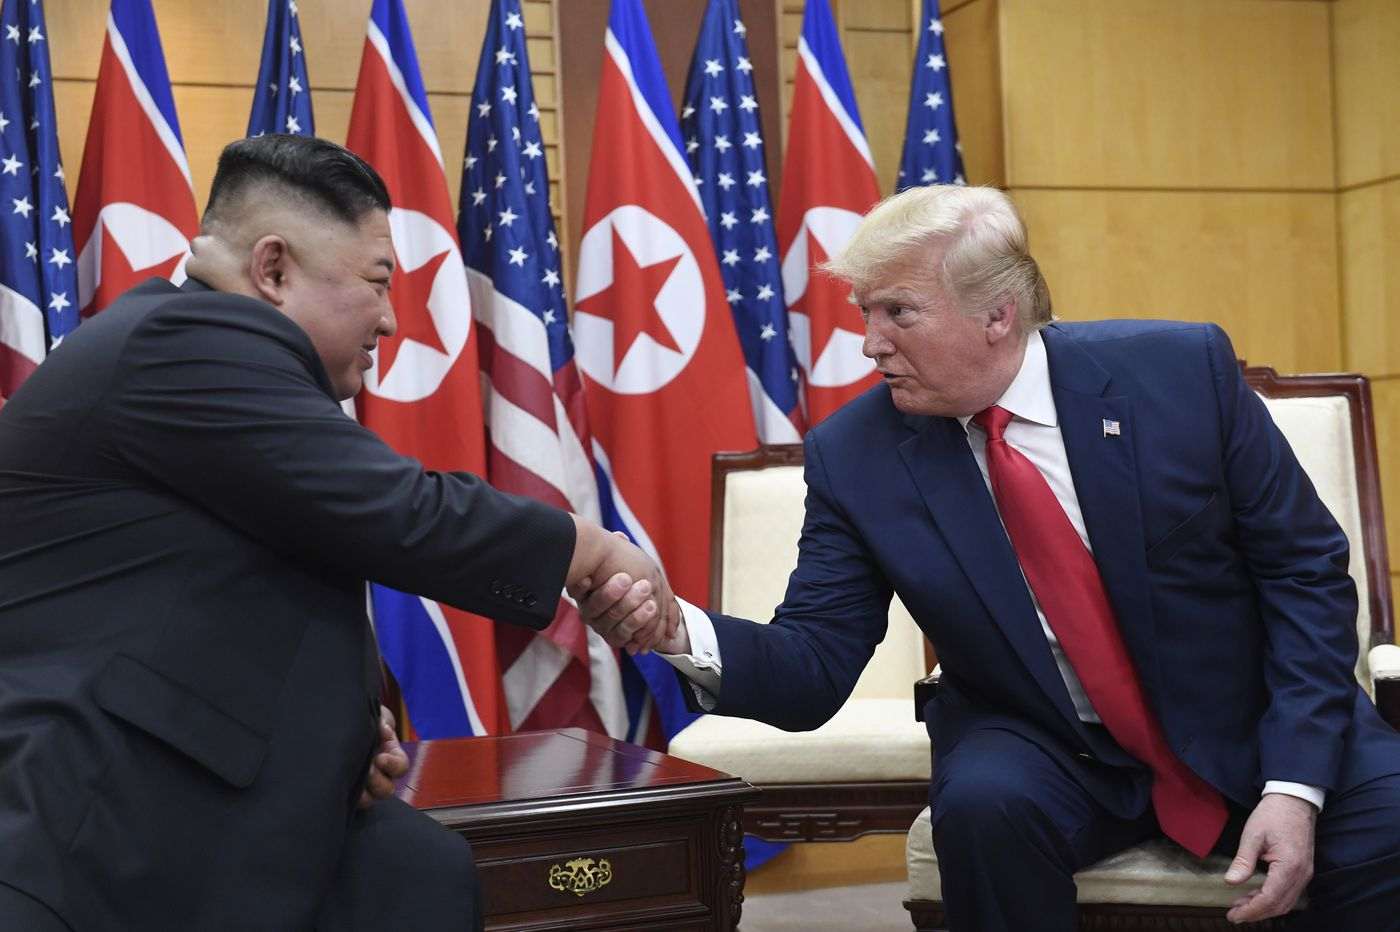 As nuclear talks resume, some fear Trump has already given North Korea what it wanted